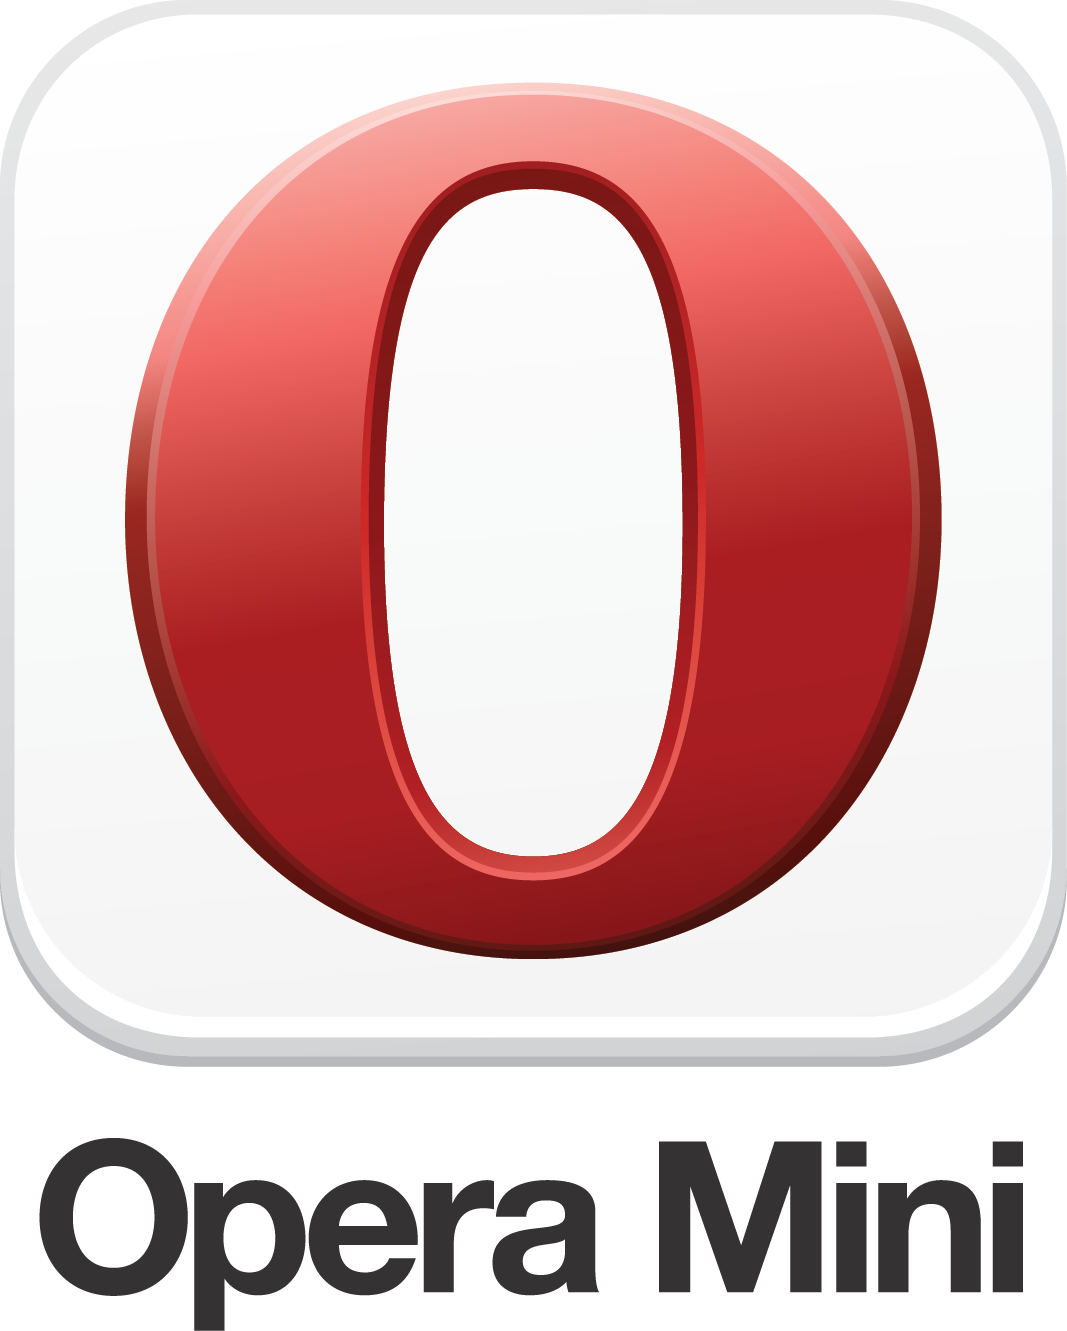 Download opera mini version 8.